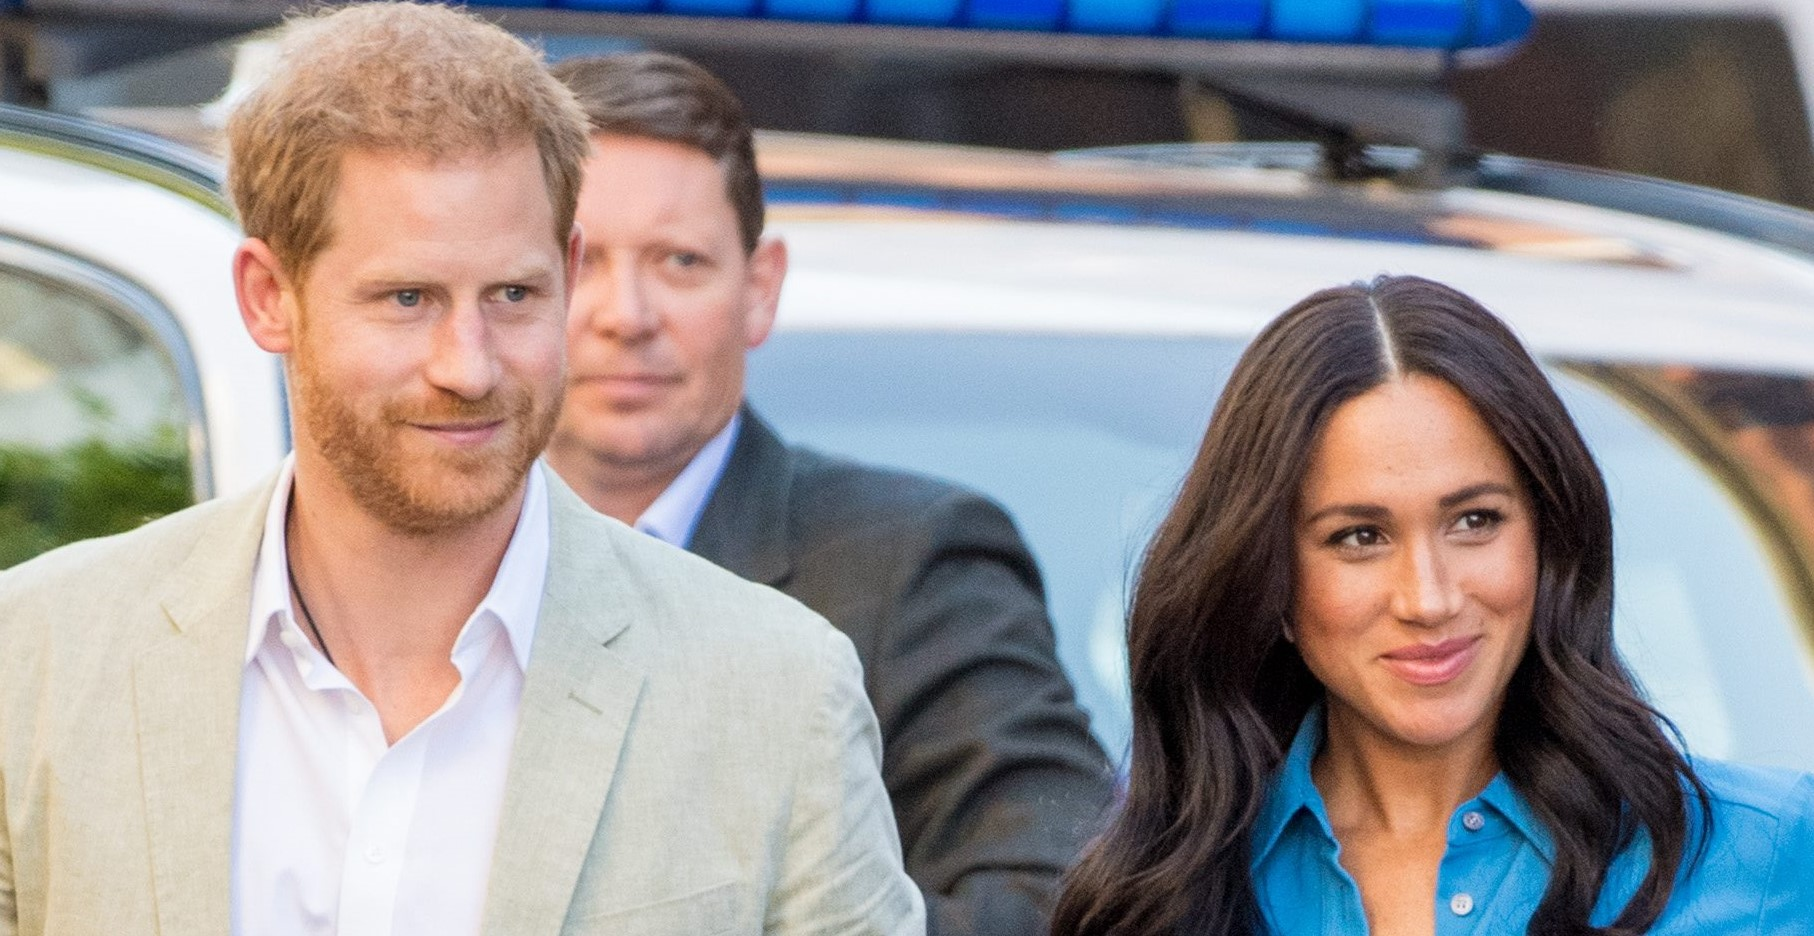 Harry and Meghan share unseen photo of Archie to celebrate Prince Charles' birthday